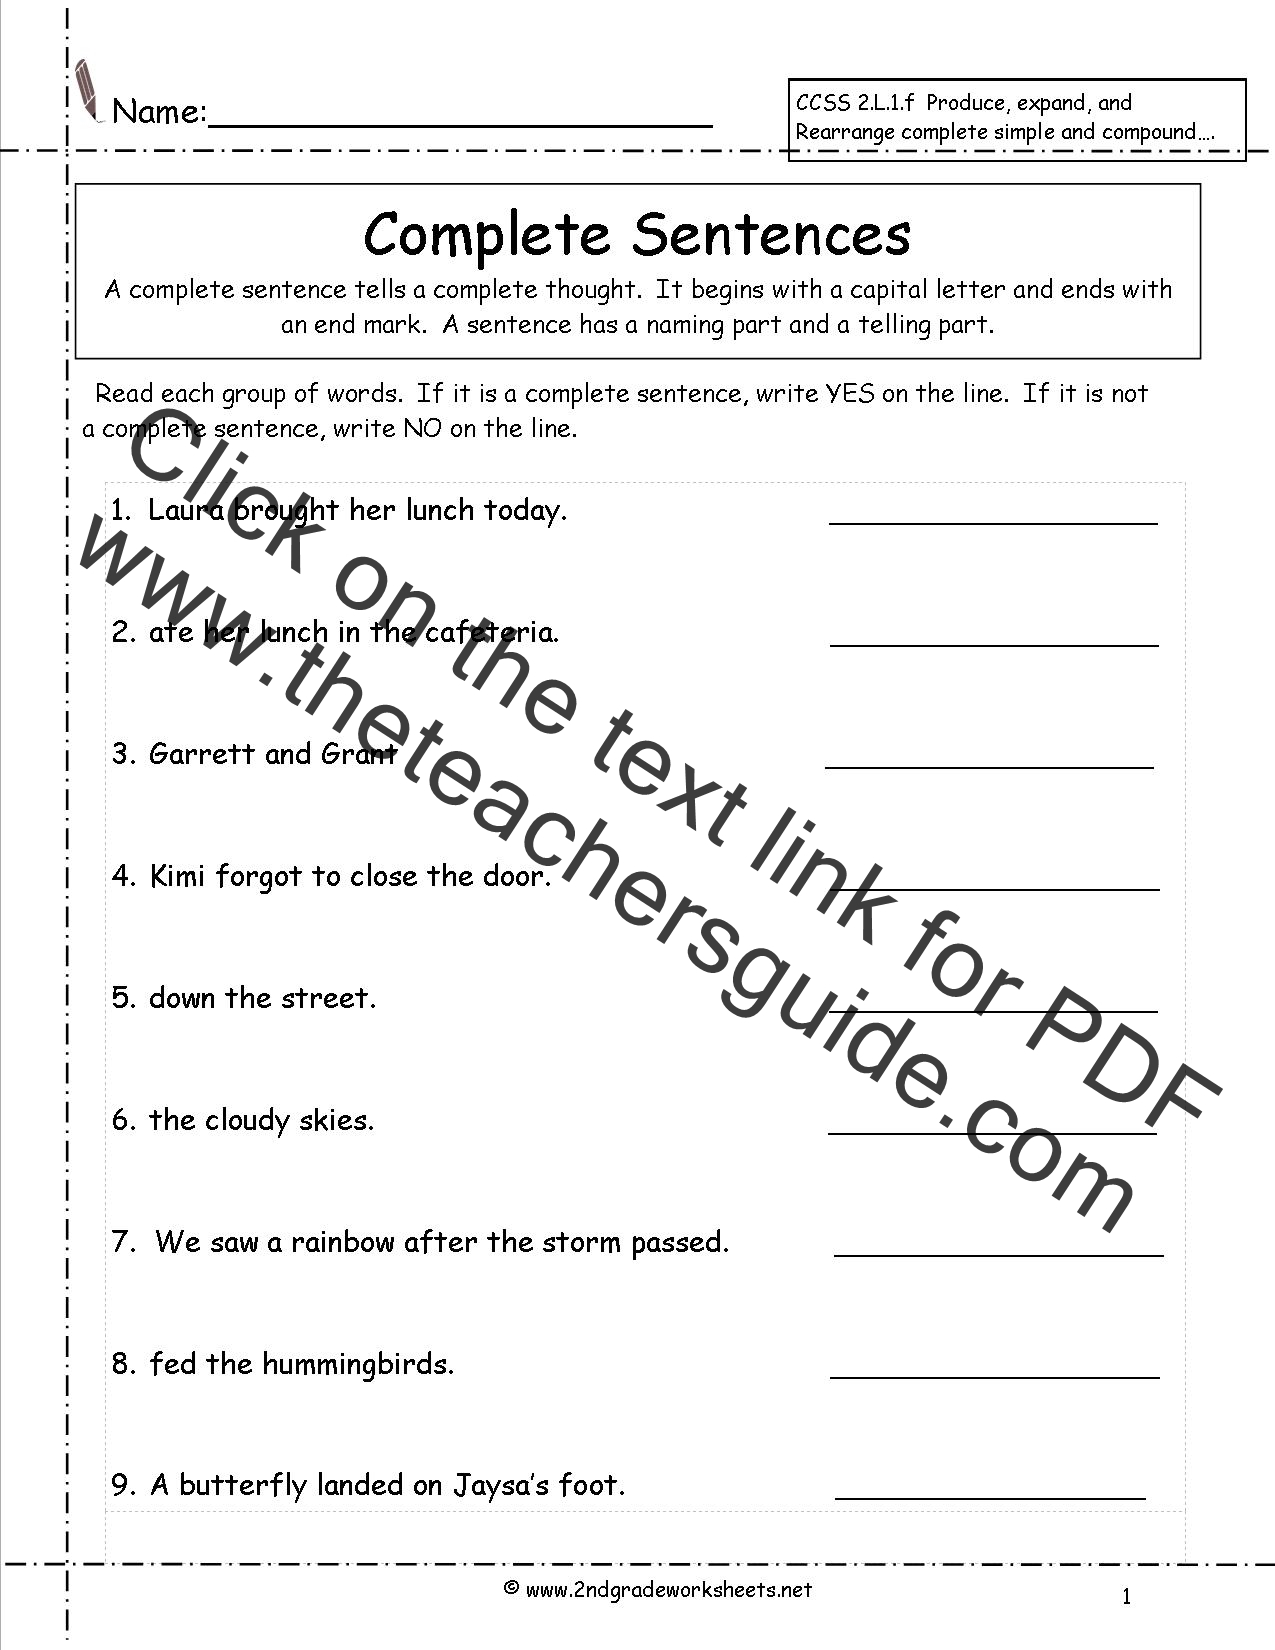 Worksheets 2nd Grade Sentence Worksheets second grade sentences worksheets ccss 2 l 1 f complete worksheets